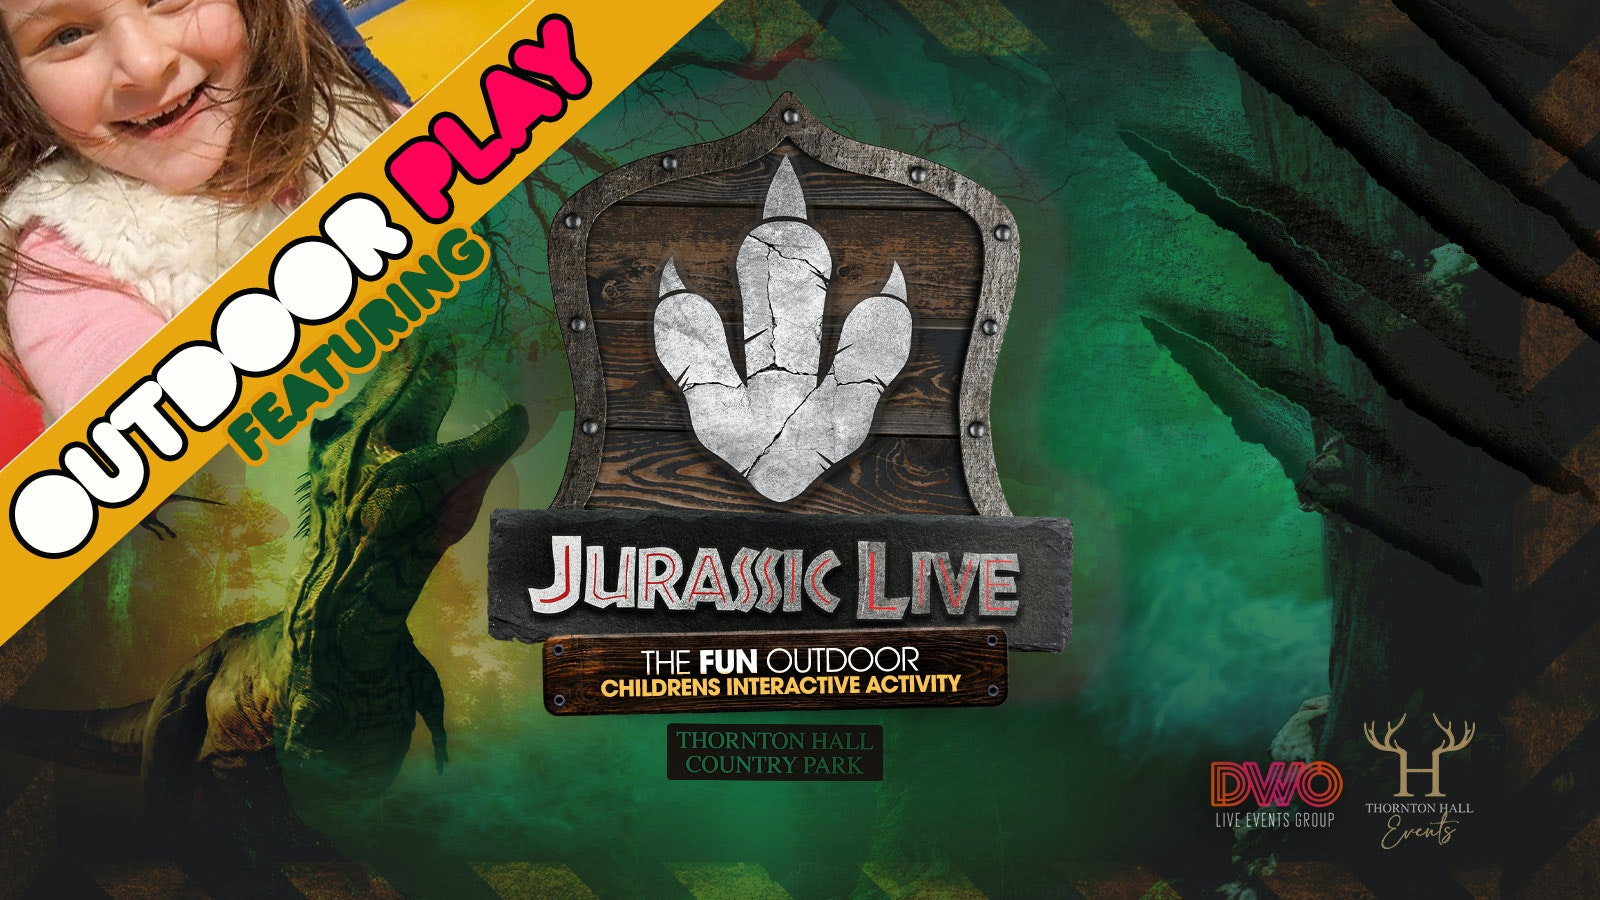 Jurassic Live inc Outdoor Play (Pm) – Saturday 24th April – 2pm